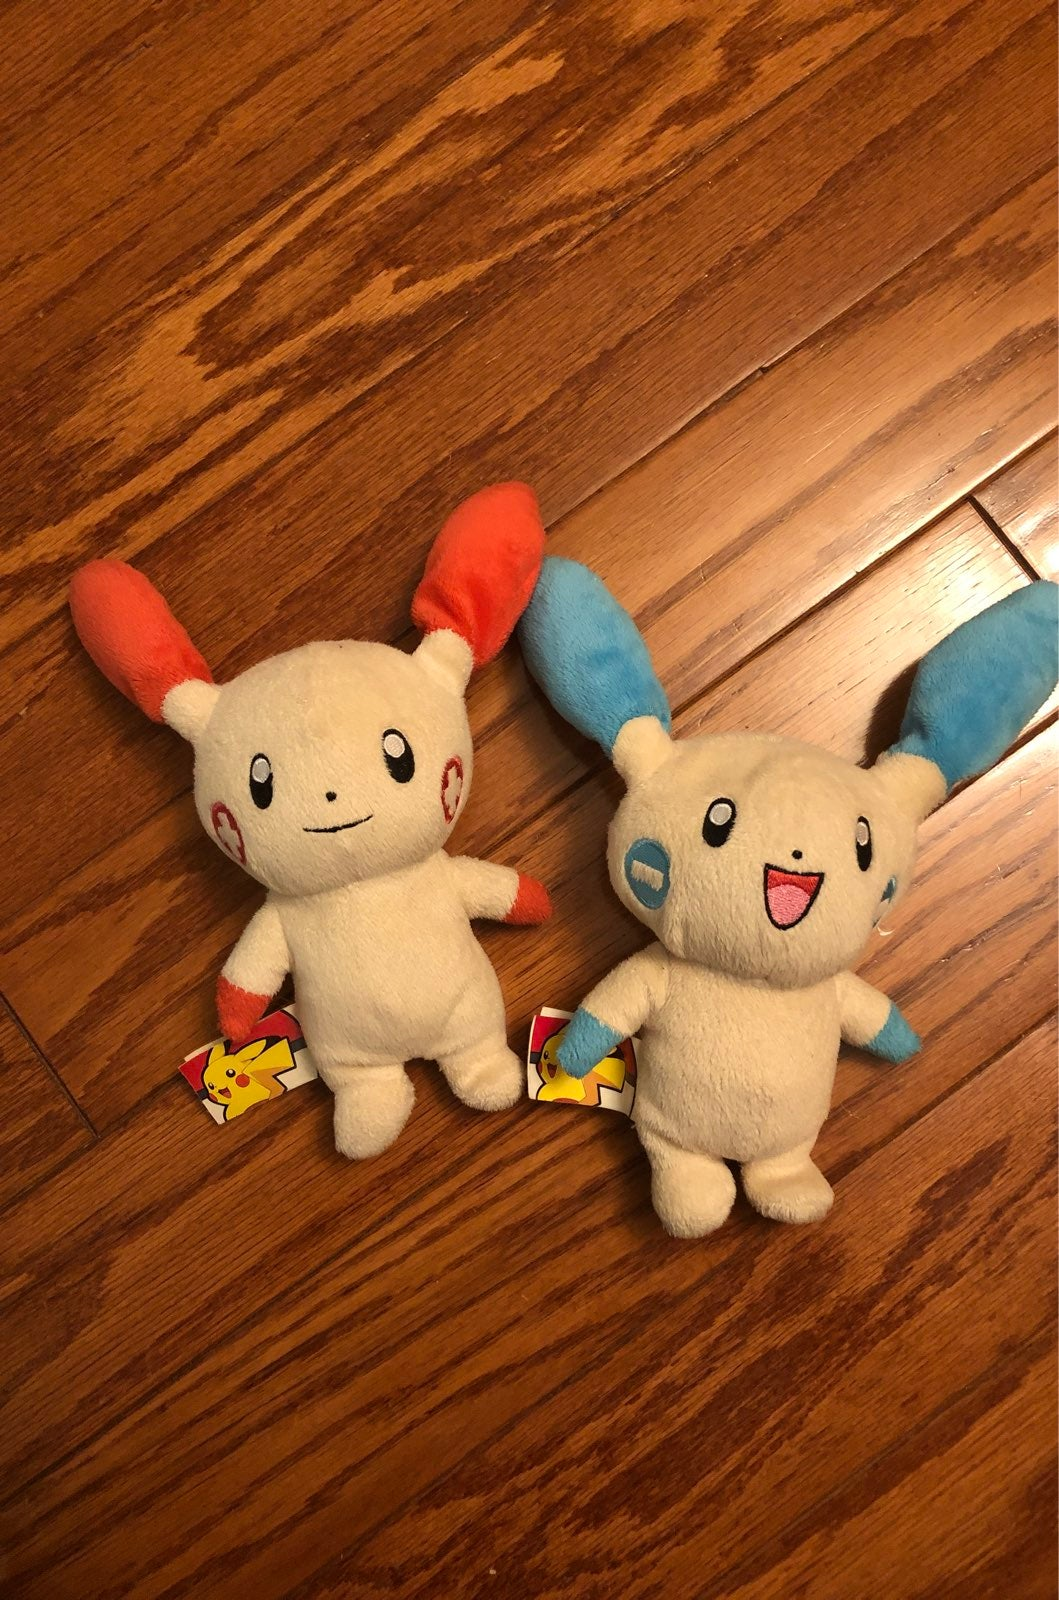 Minun and Plusle Plushes